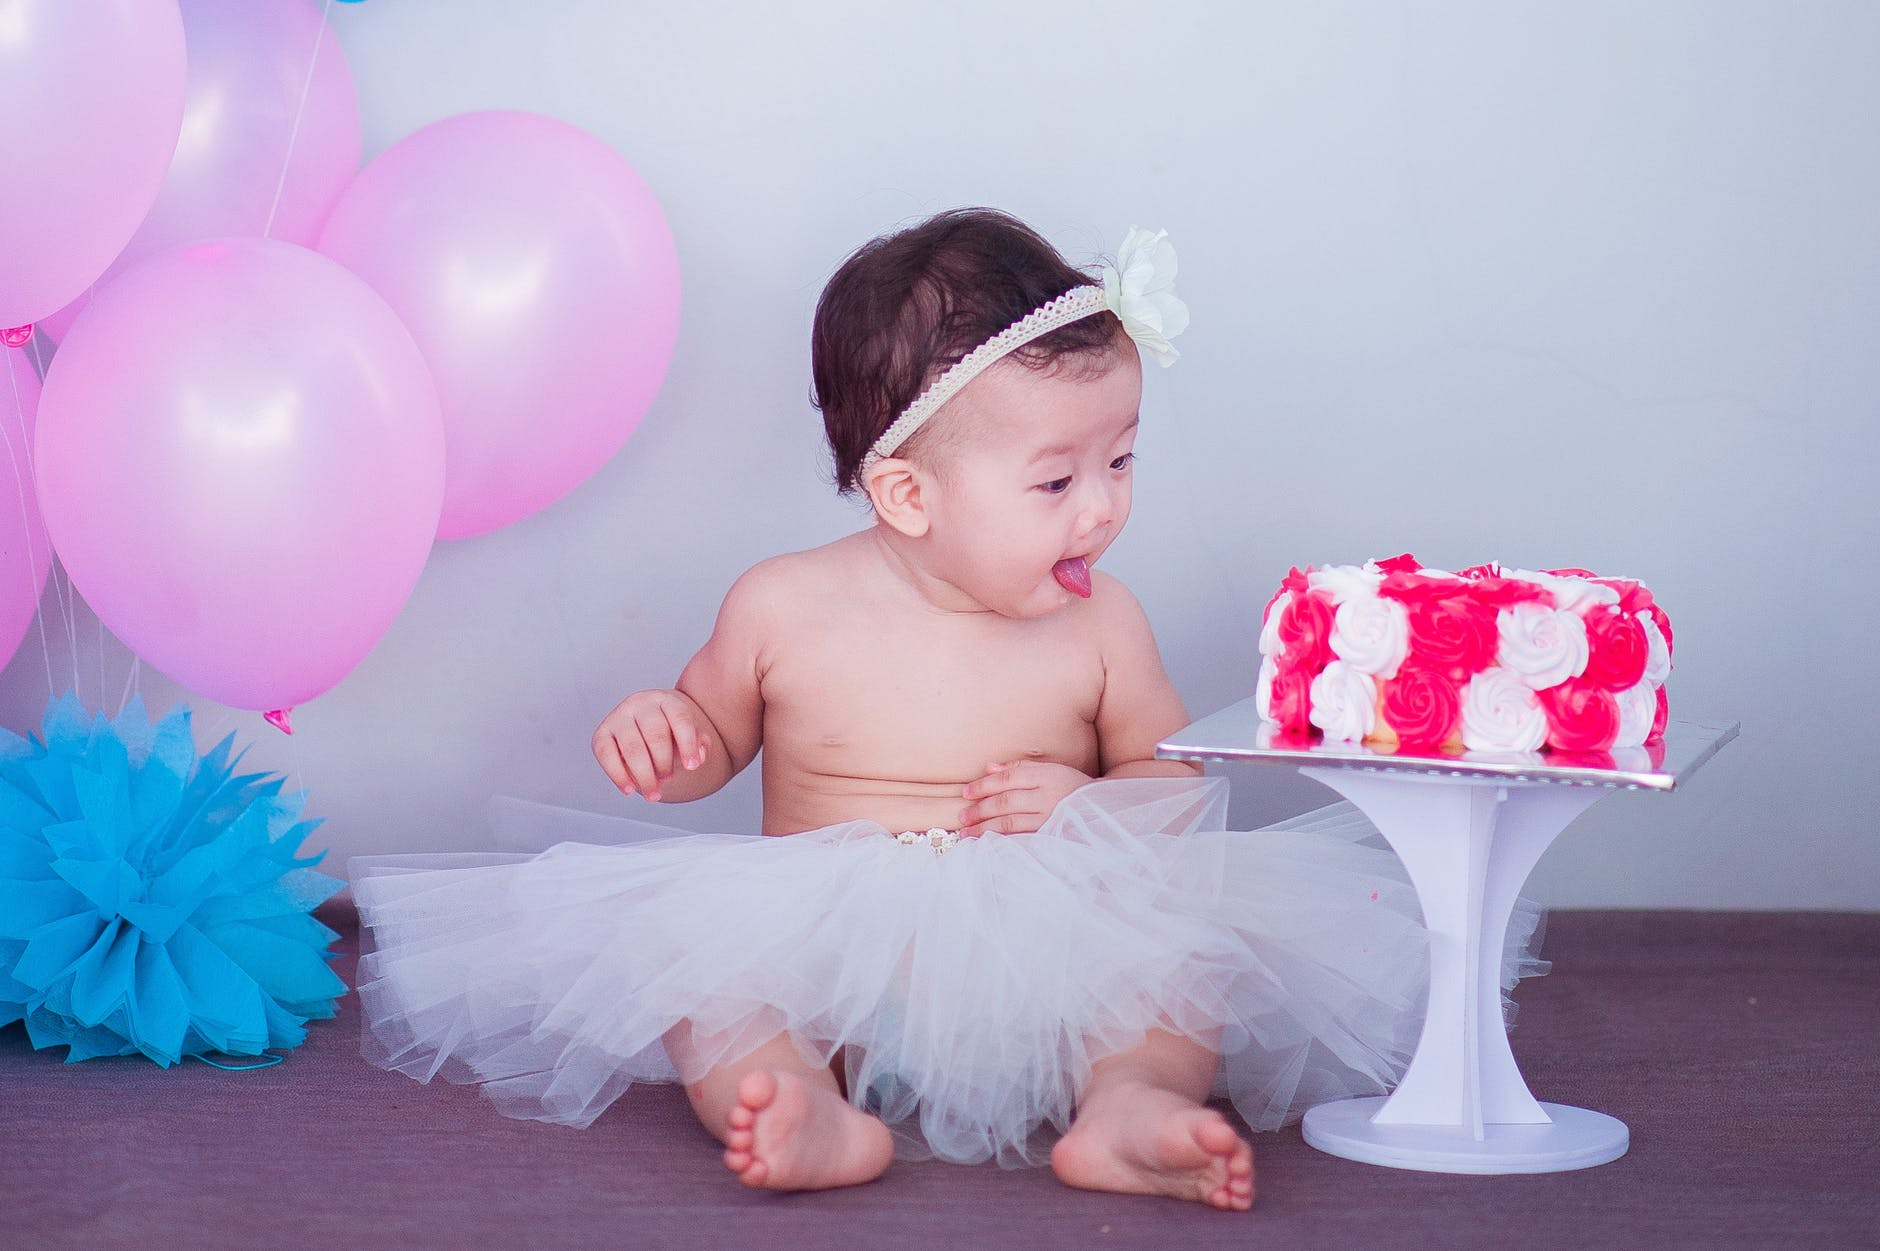 10 Cutest Themes For Baby's 1st Birthday To Wow Your Guests